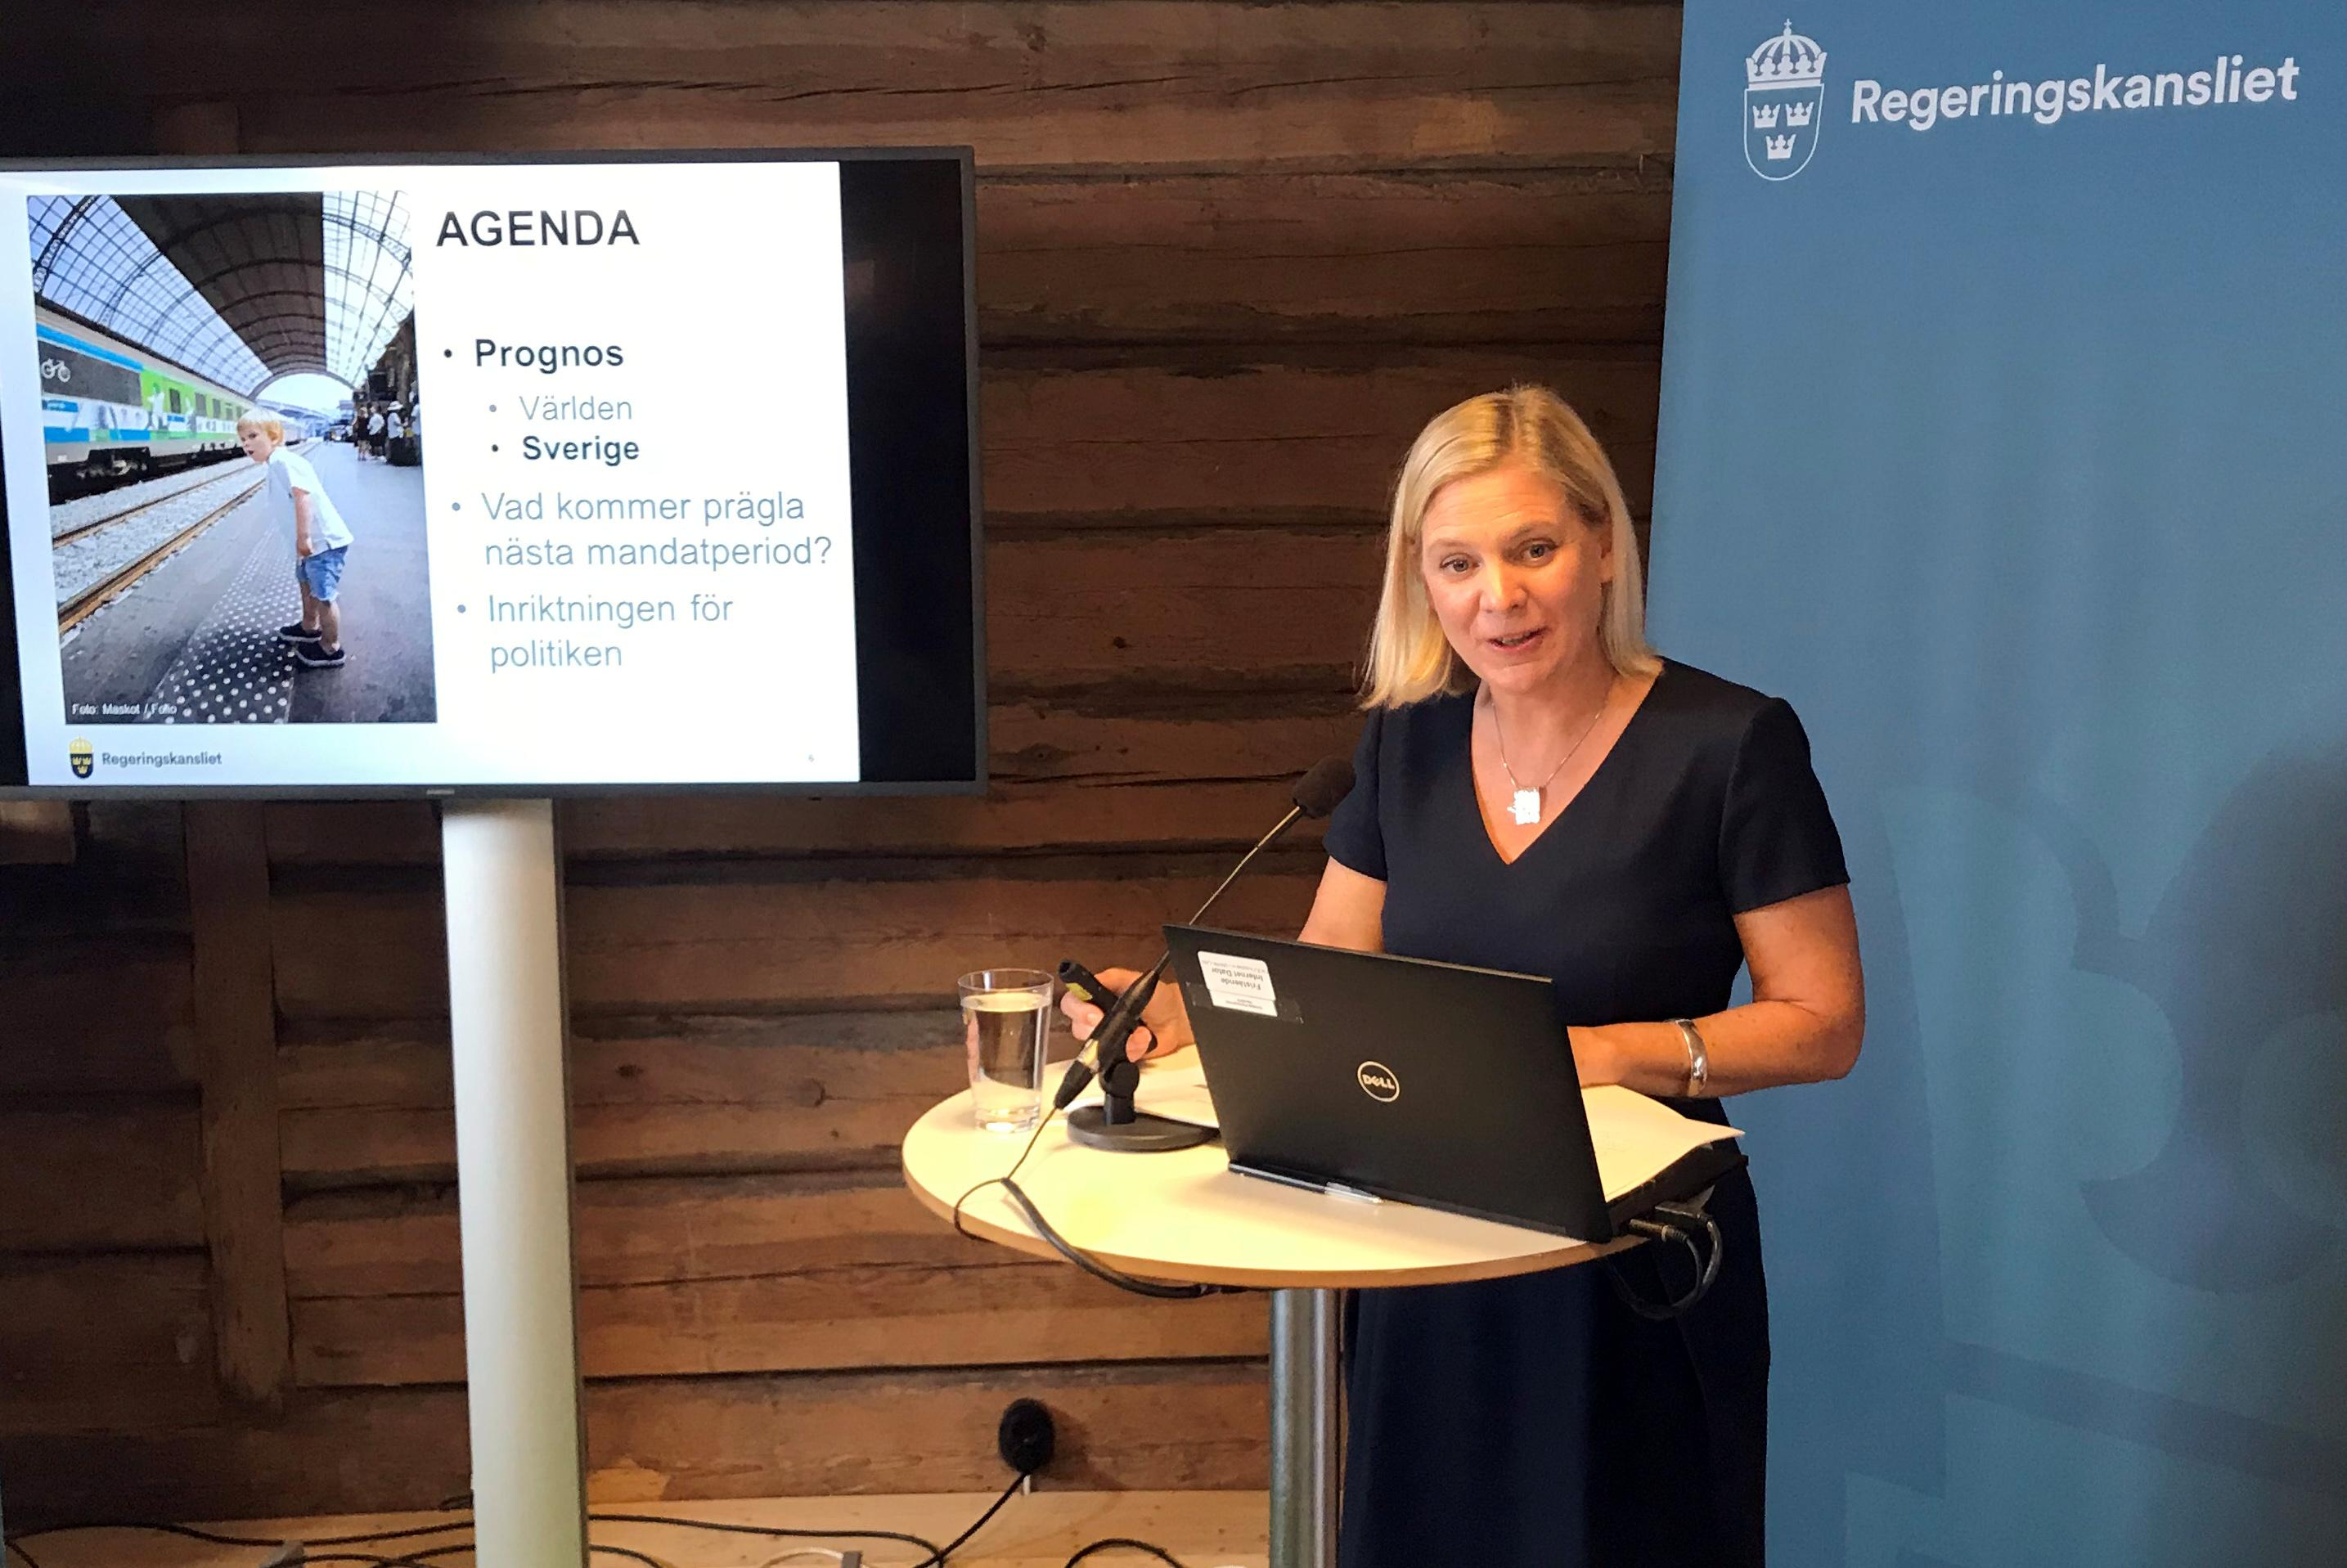 Sweden to introduce bank tax to fund defence boost